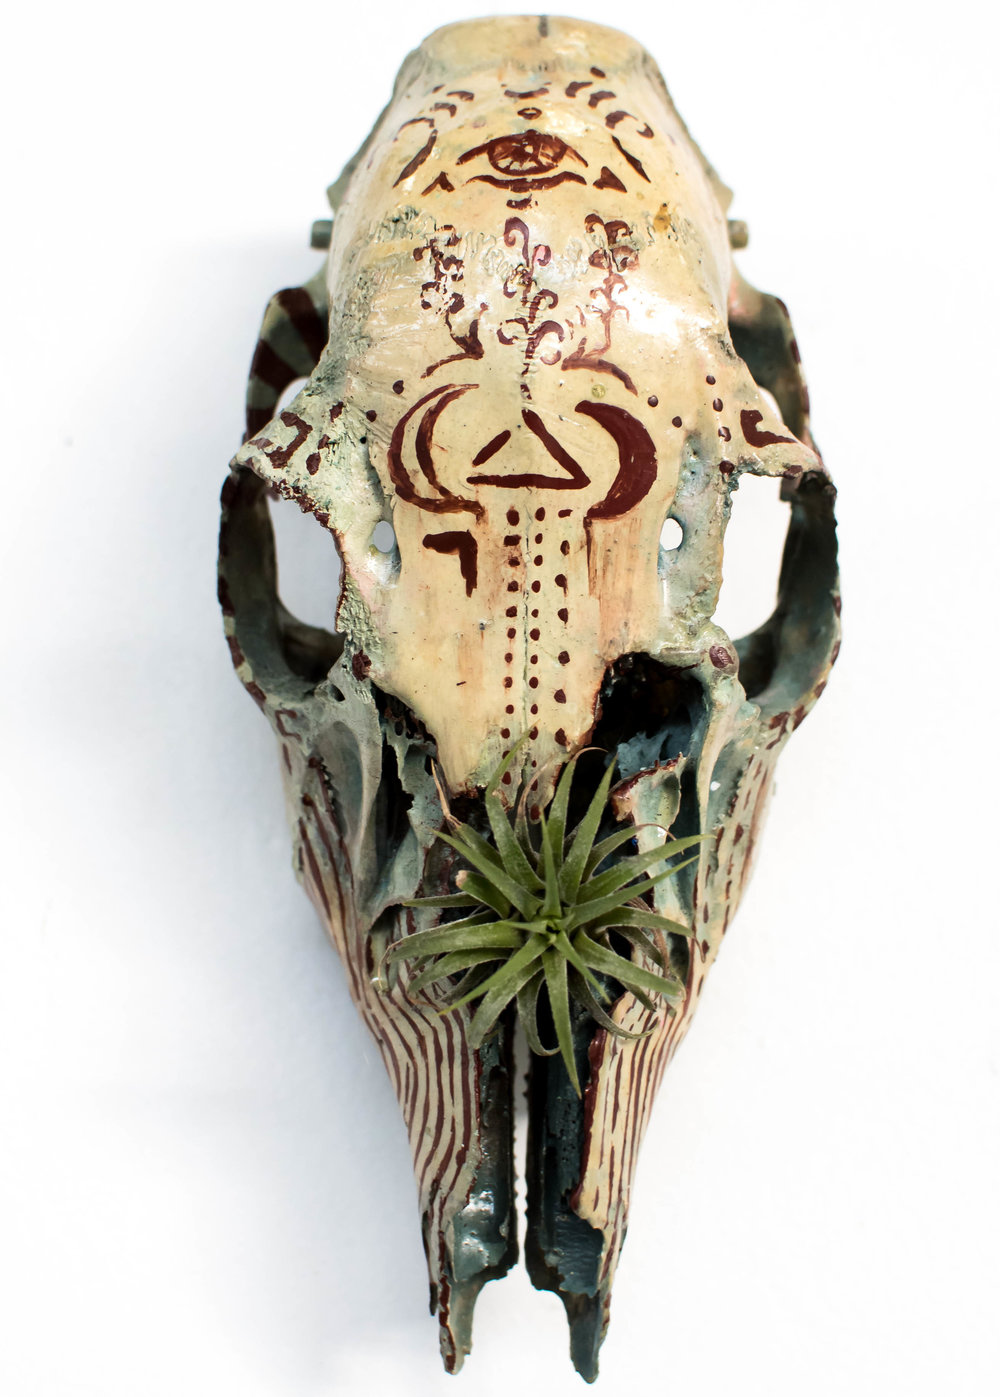 "Spirit Guide    reclaimed skull with painted sigil for keeping an open perspective and inspiring internal growth  10"" x 7"" x 5"""